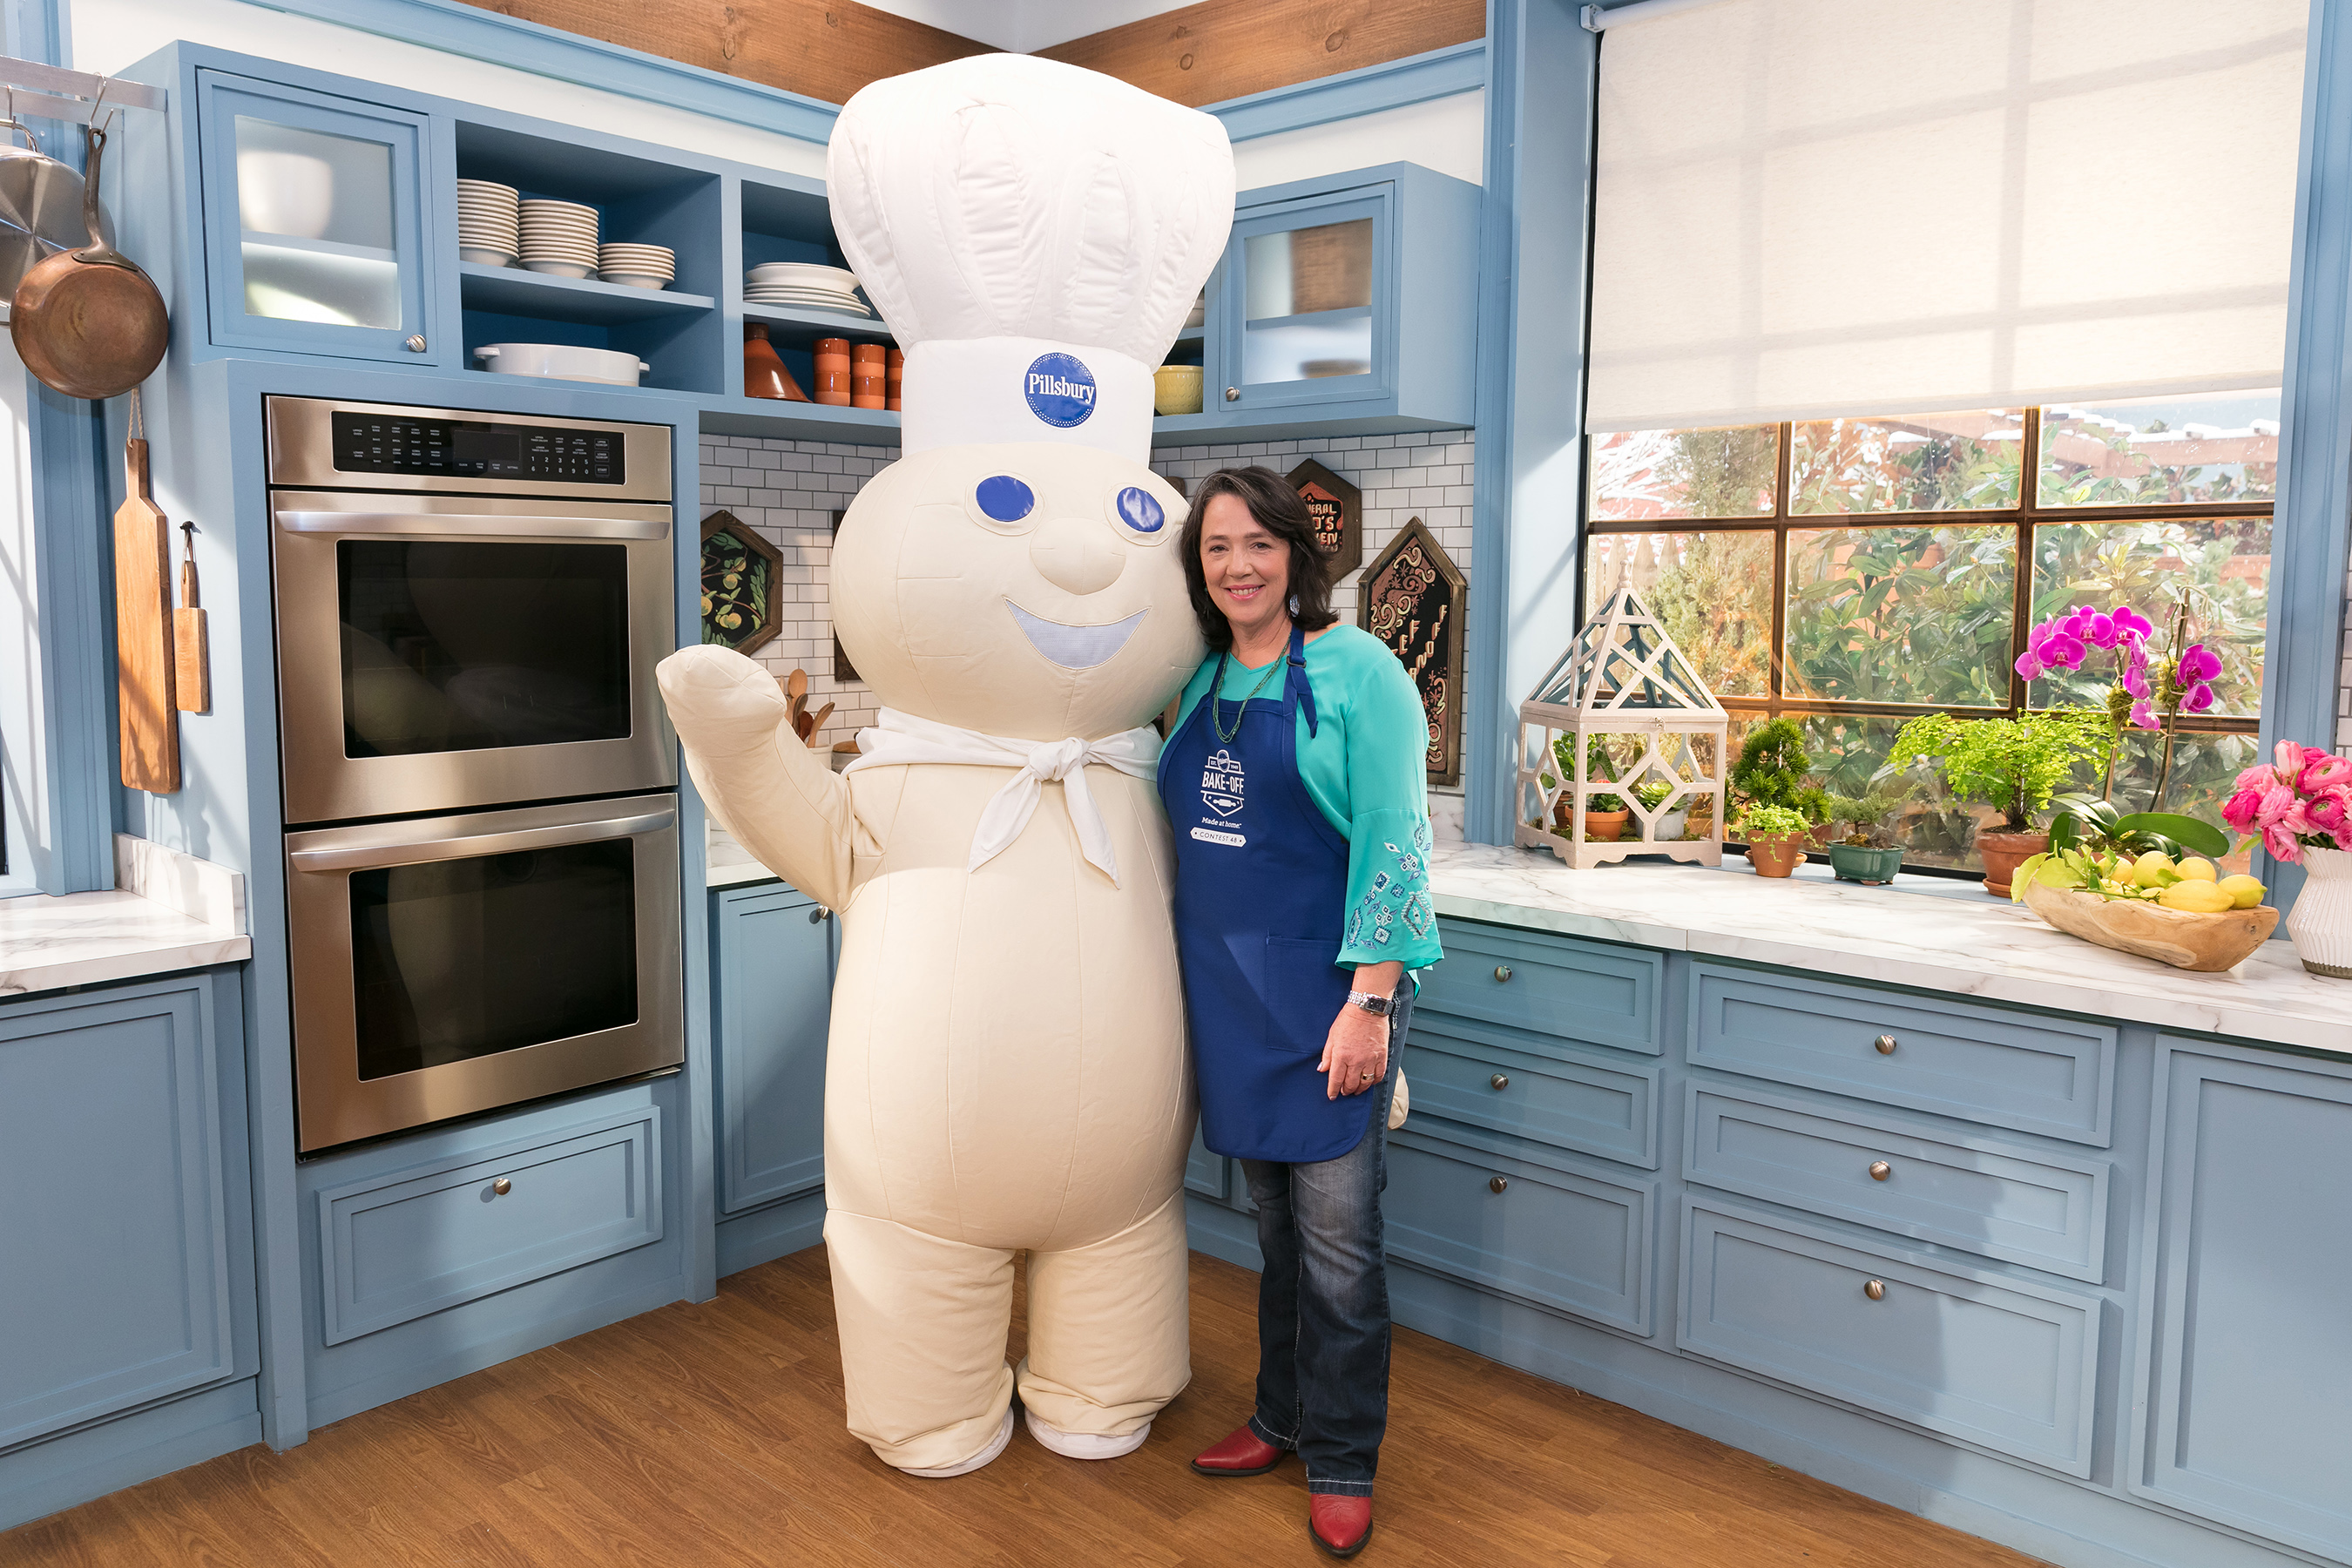 After the 4 category winners are announced in Jan., all finalists will travel to NYC for an appearance on Food Network's hit show, The Kitchen, where the grand prize winner will be revealed in Feb.